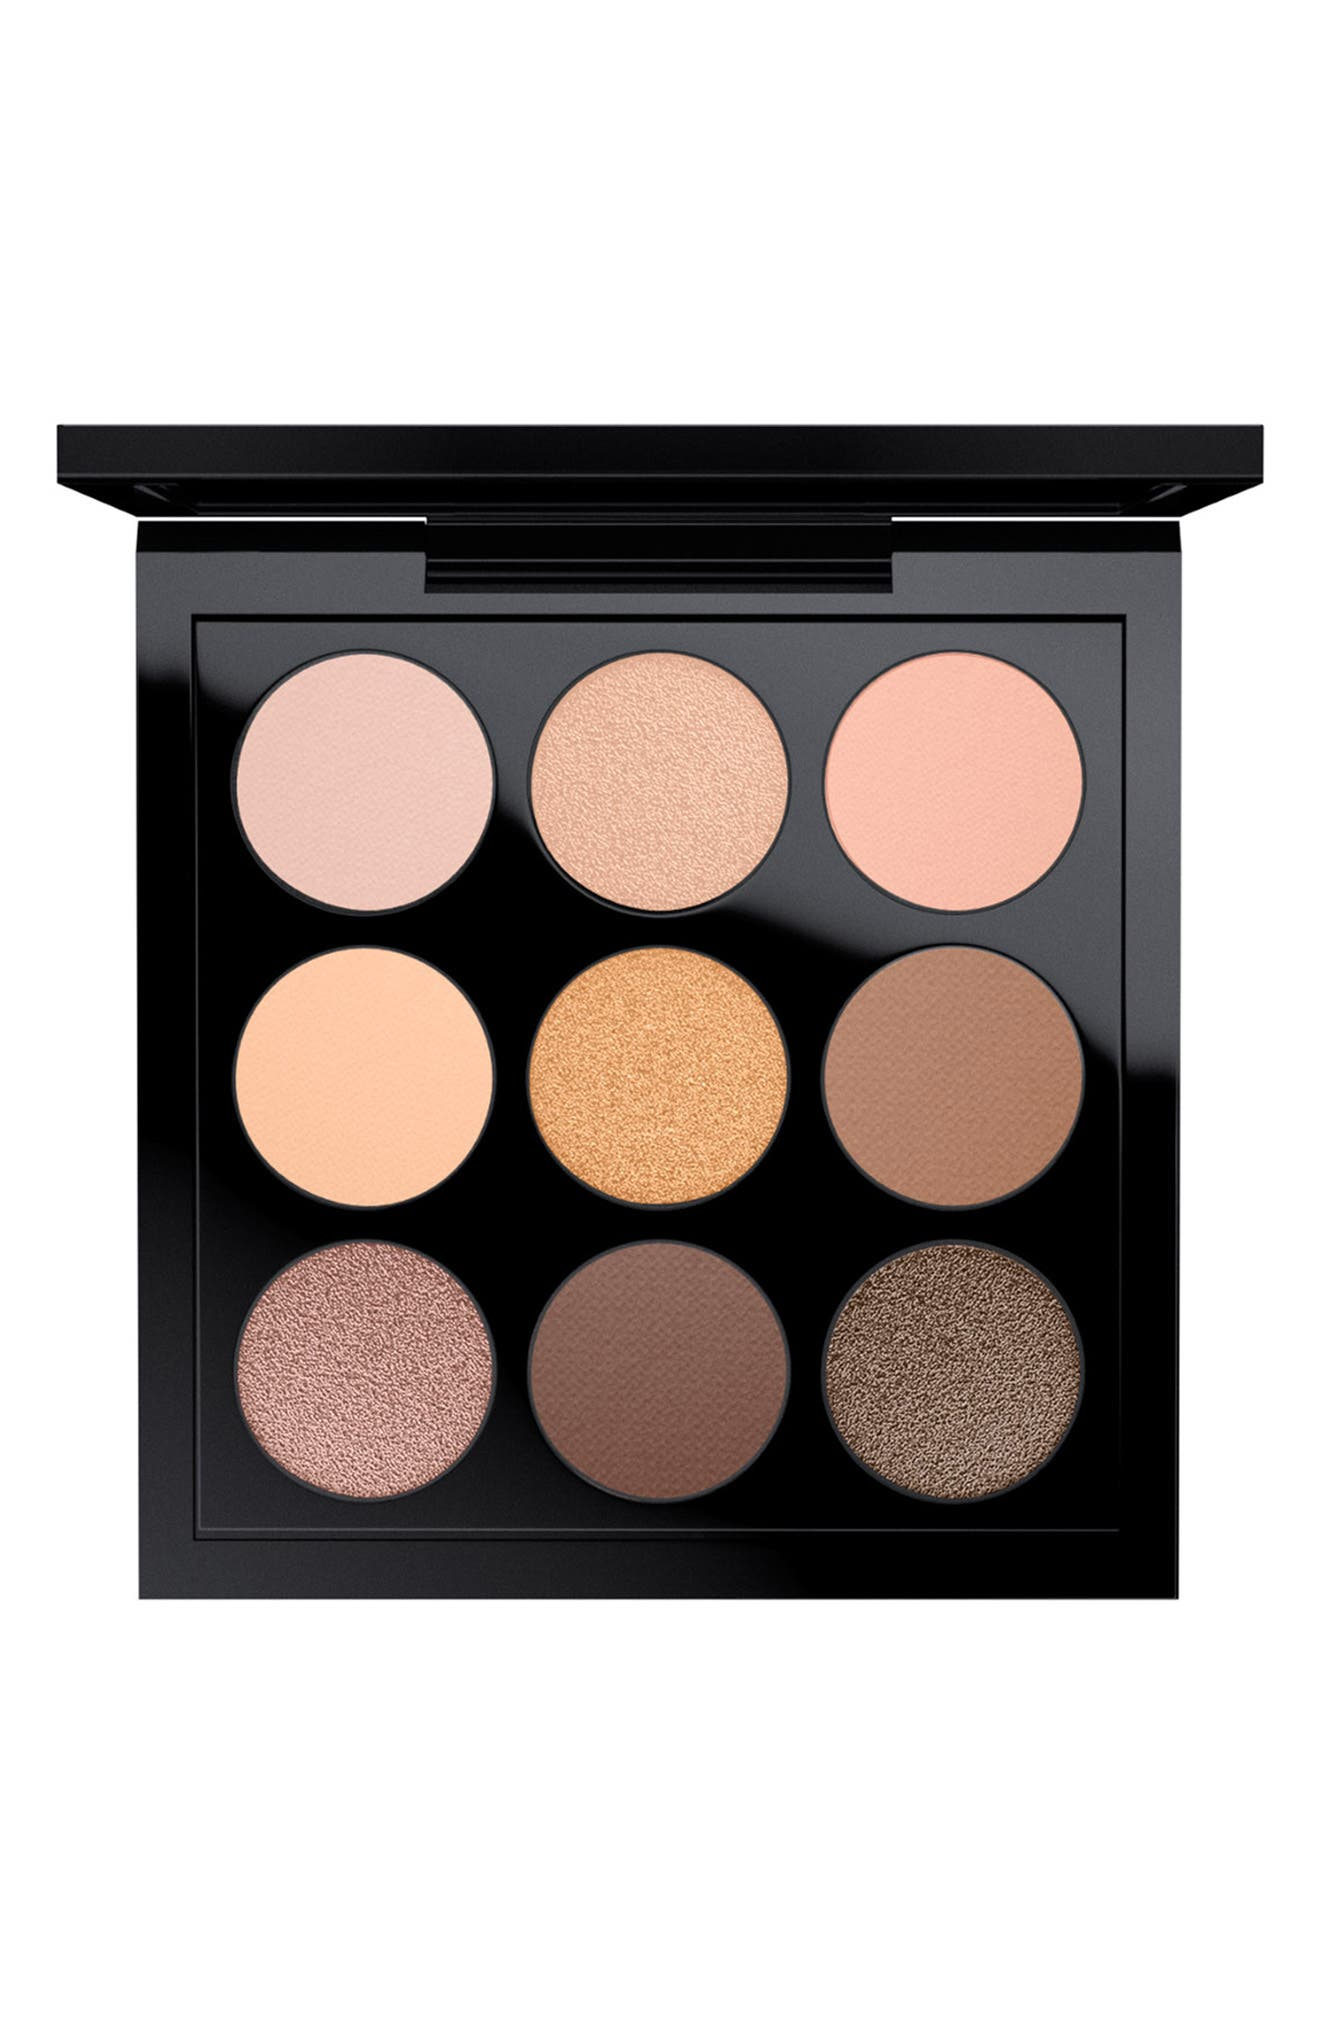 MAC Times Nine Eyeshadow Palette ($53 Value)